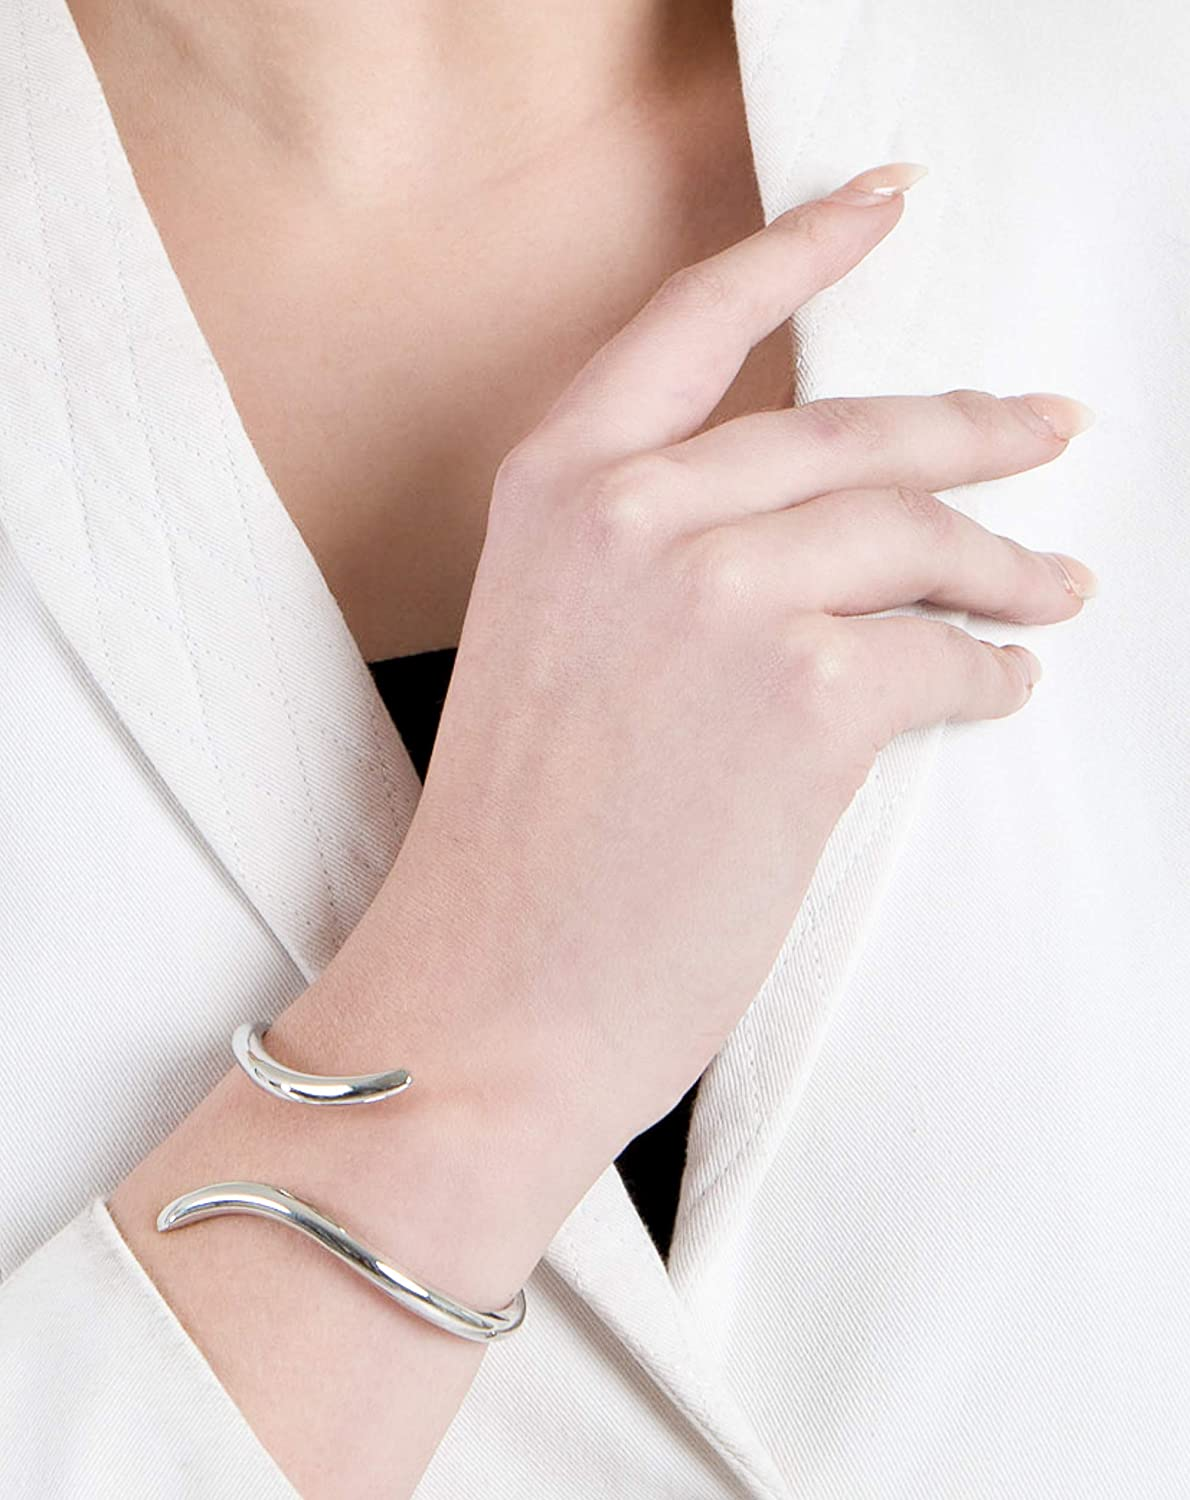 Perfect For Daily Wear Gifts For Women and Girls Stainless Steel Love Angel Twisted Wrist Cuff